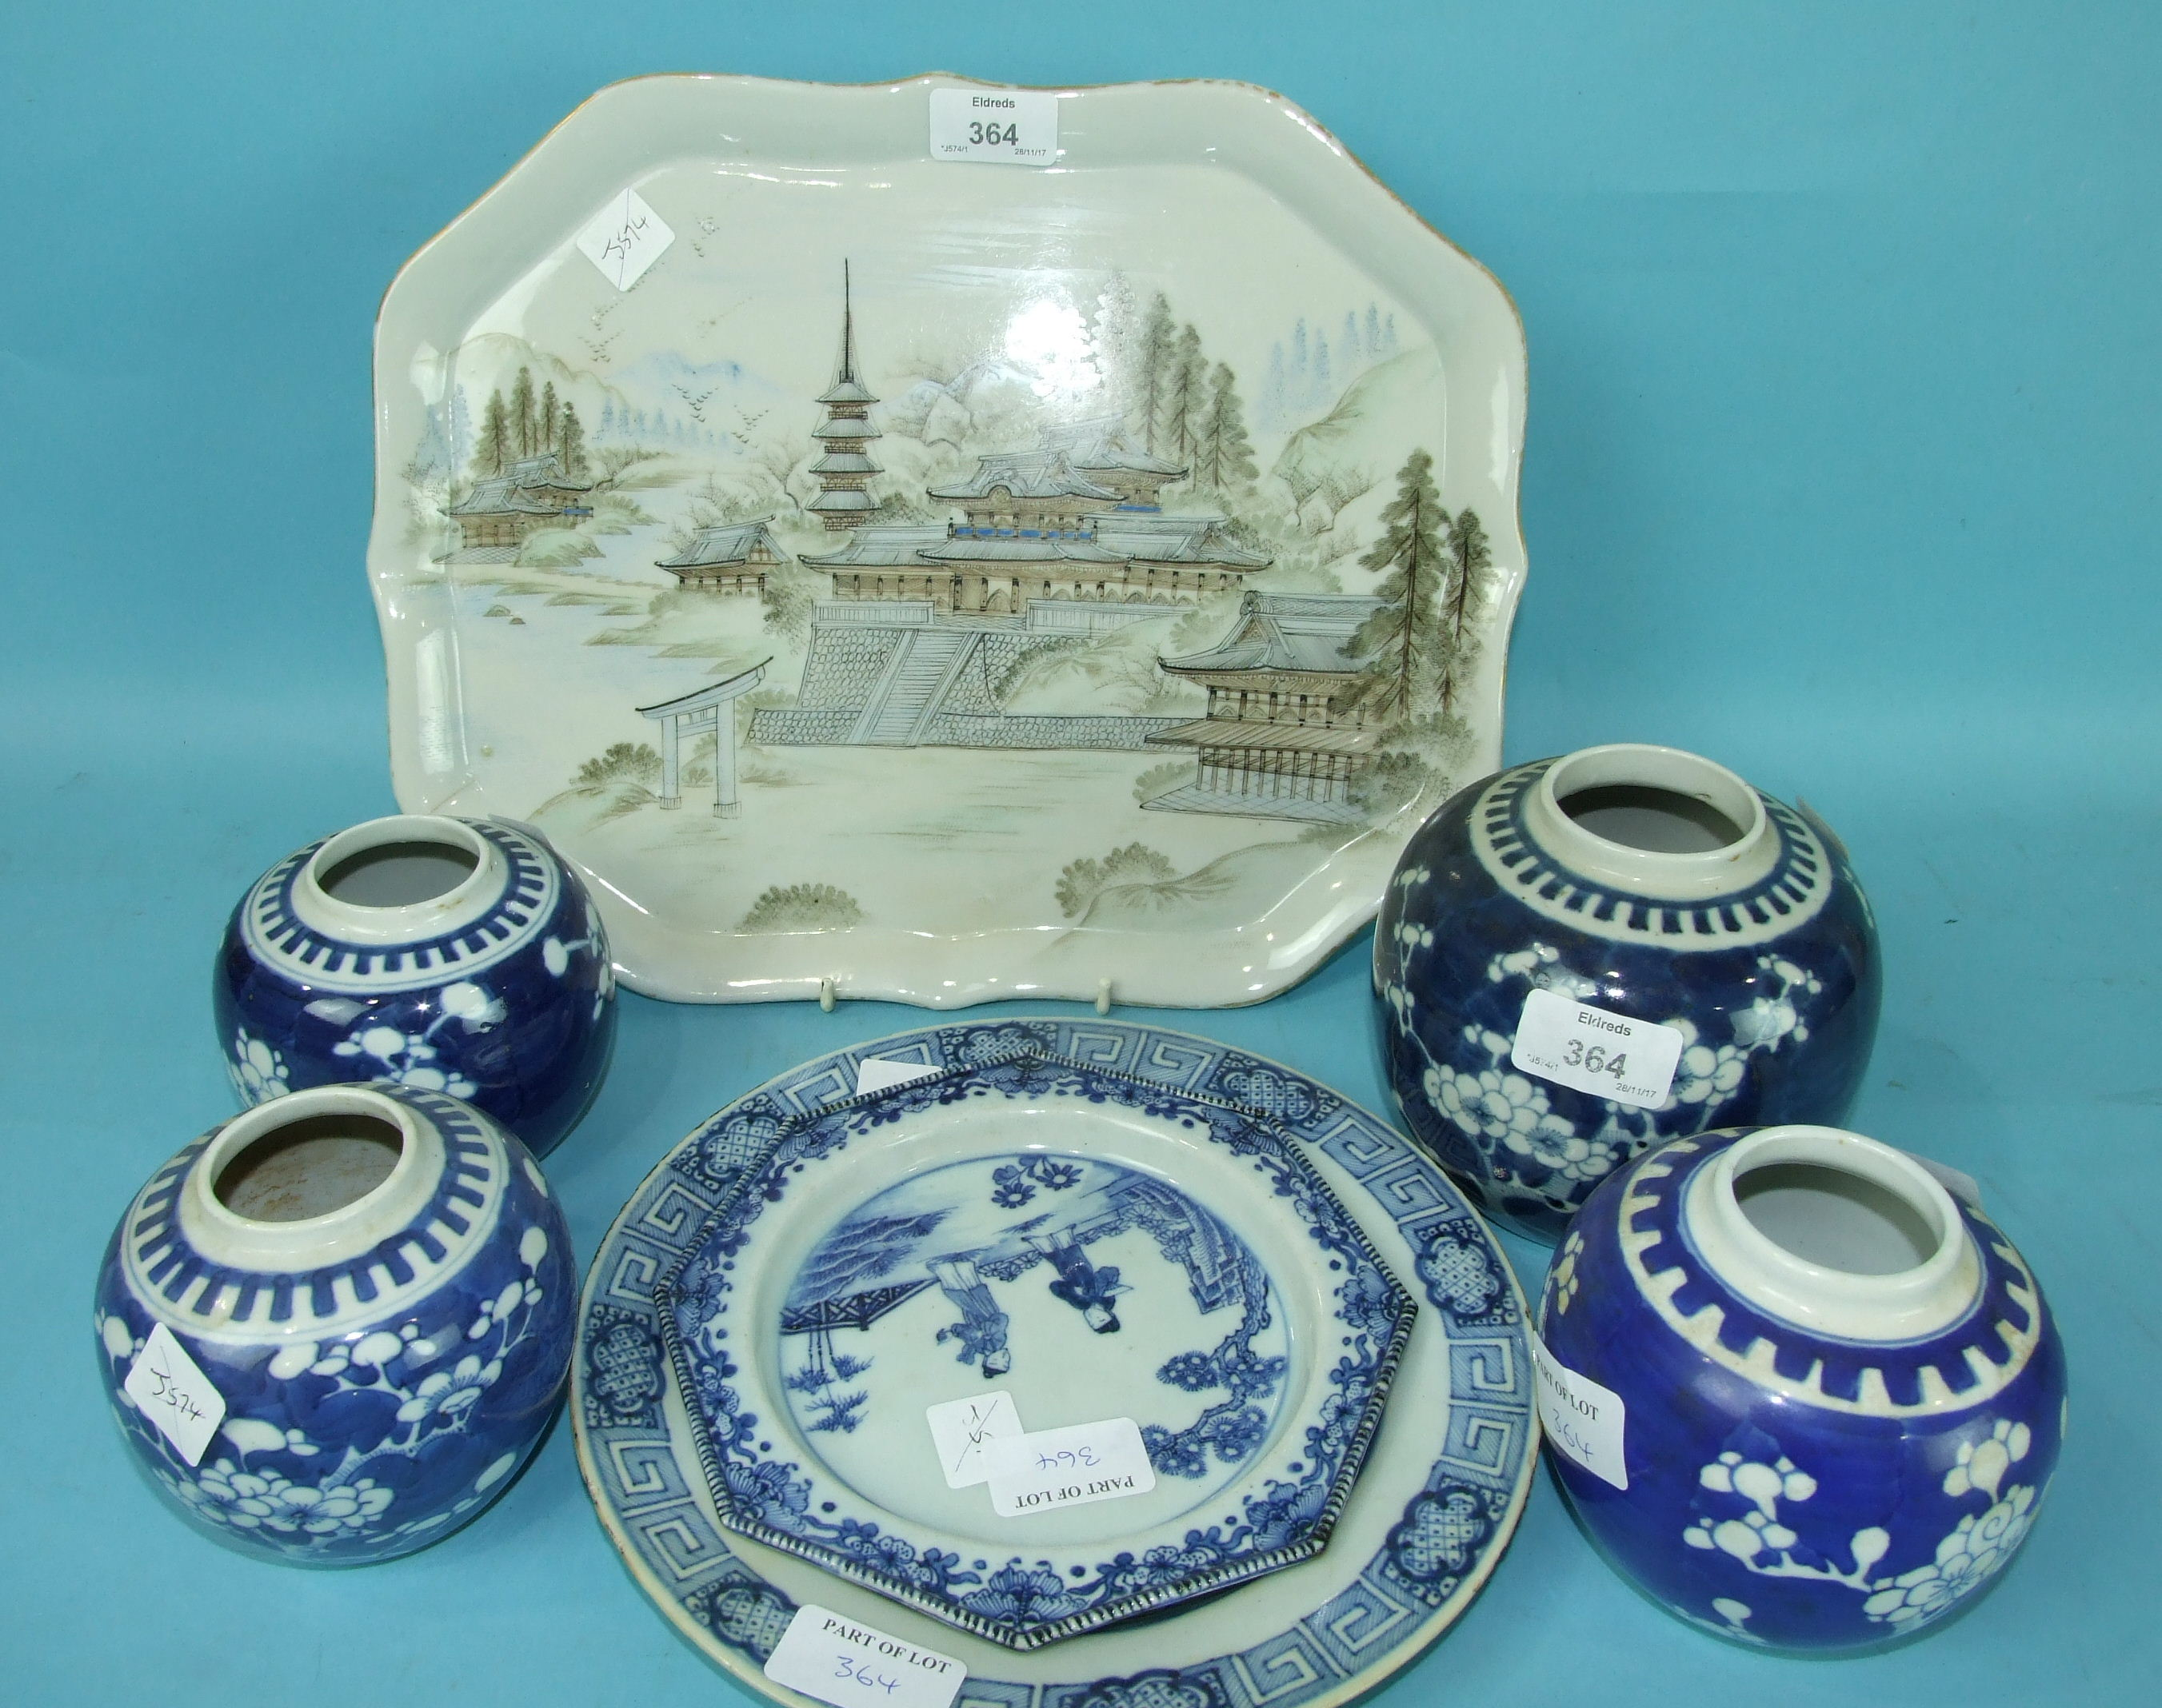 Lot 364 - A small 18th century Chinese octagonal plate decorated with figures, 17.5cm diameter, a similar